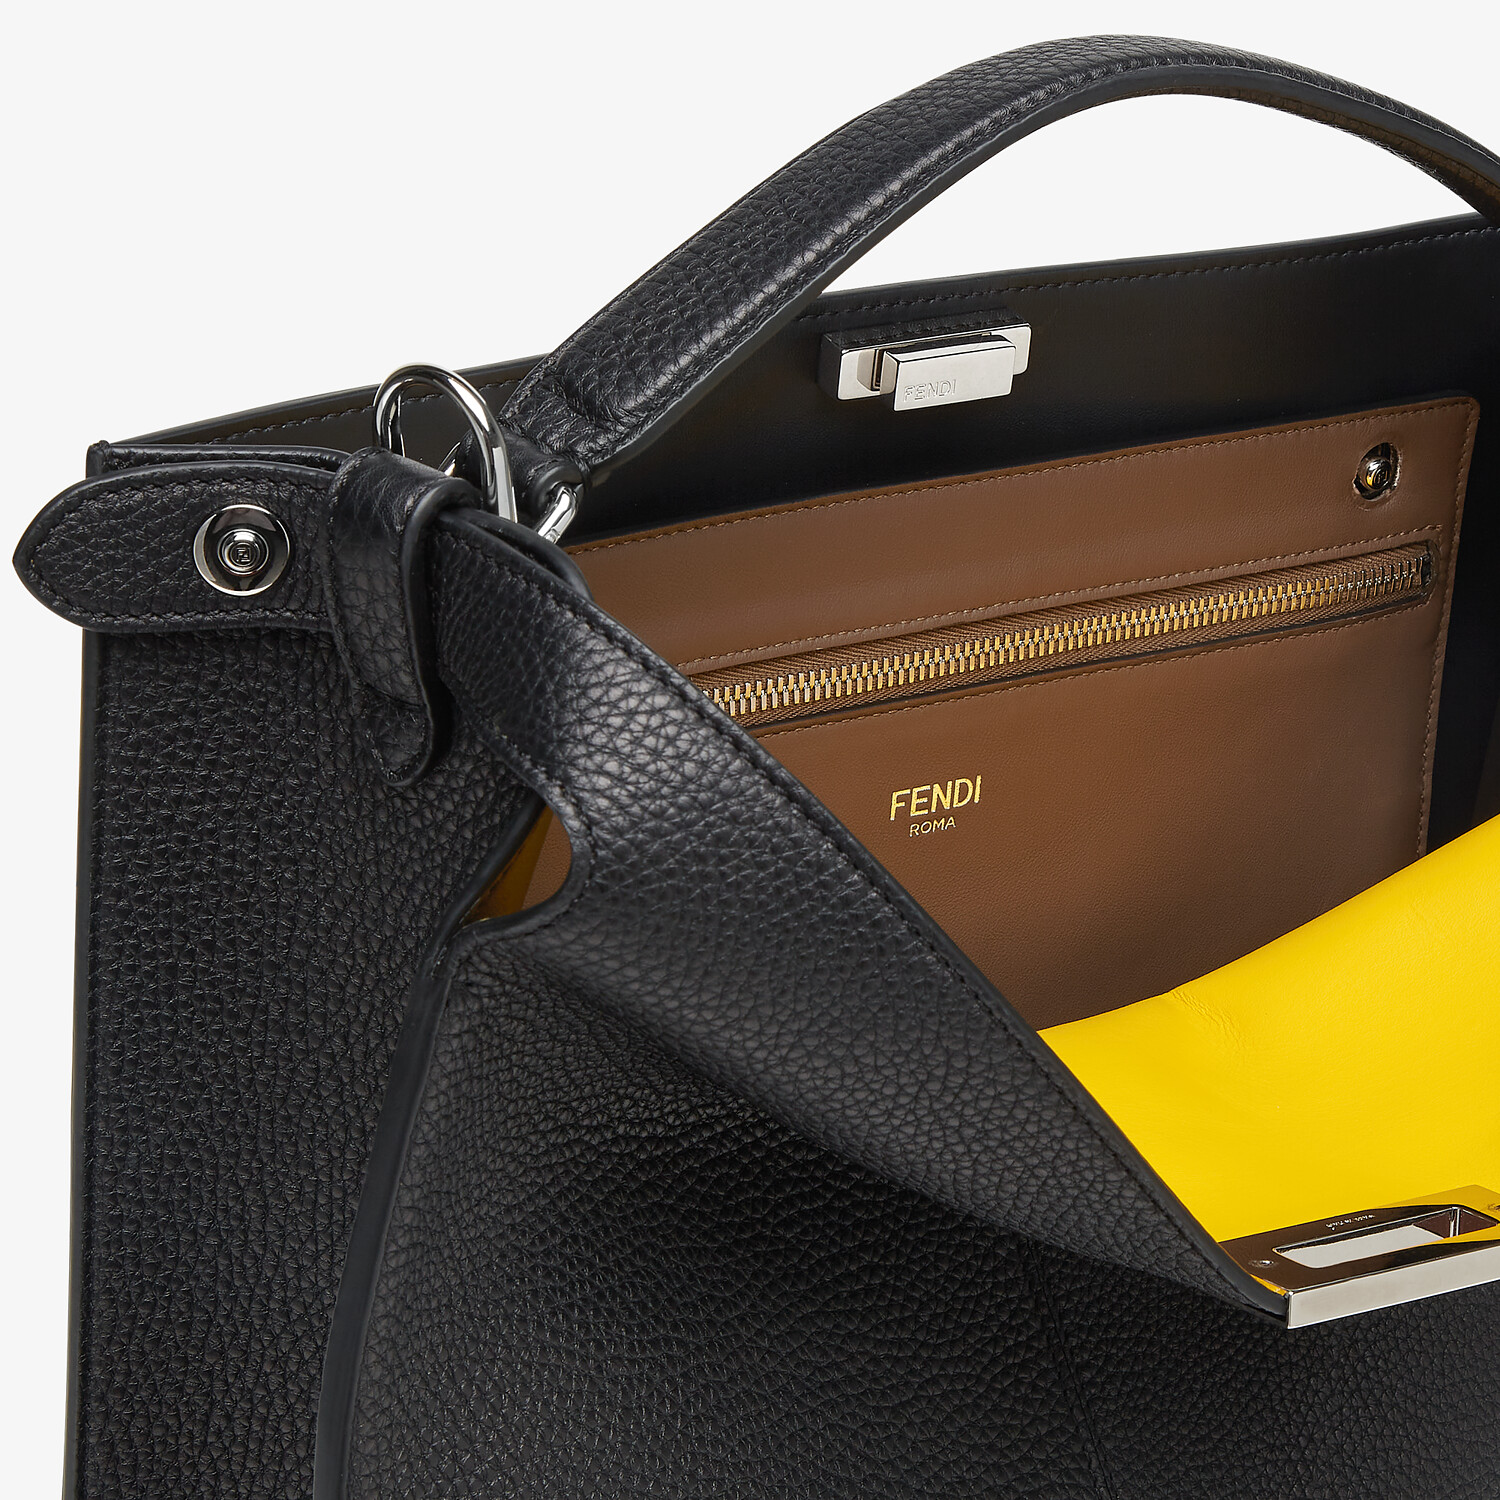 FENDI PEEKABOO ISEEU TOTE - Black leather bag - view 7 detail